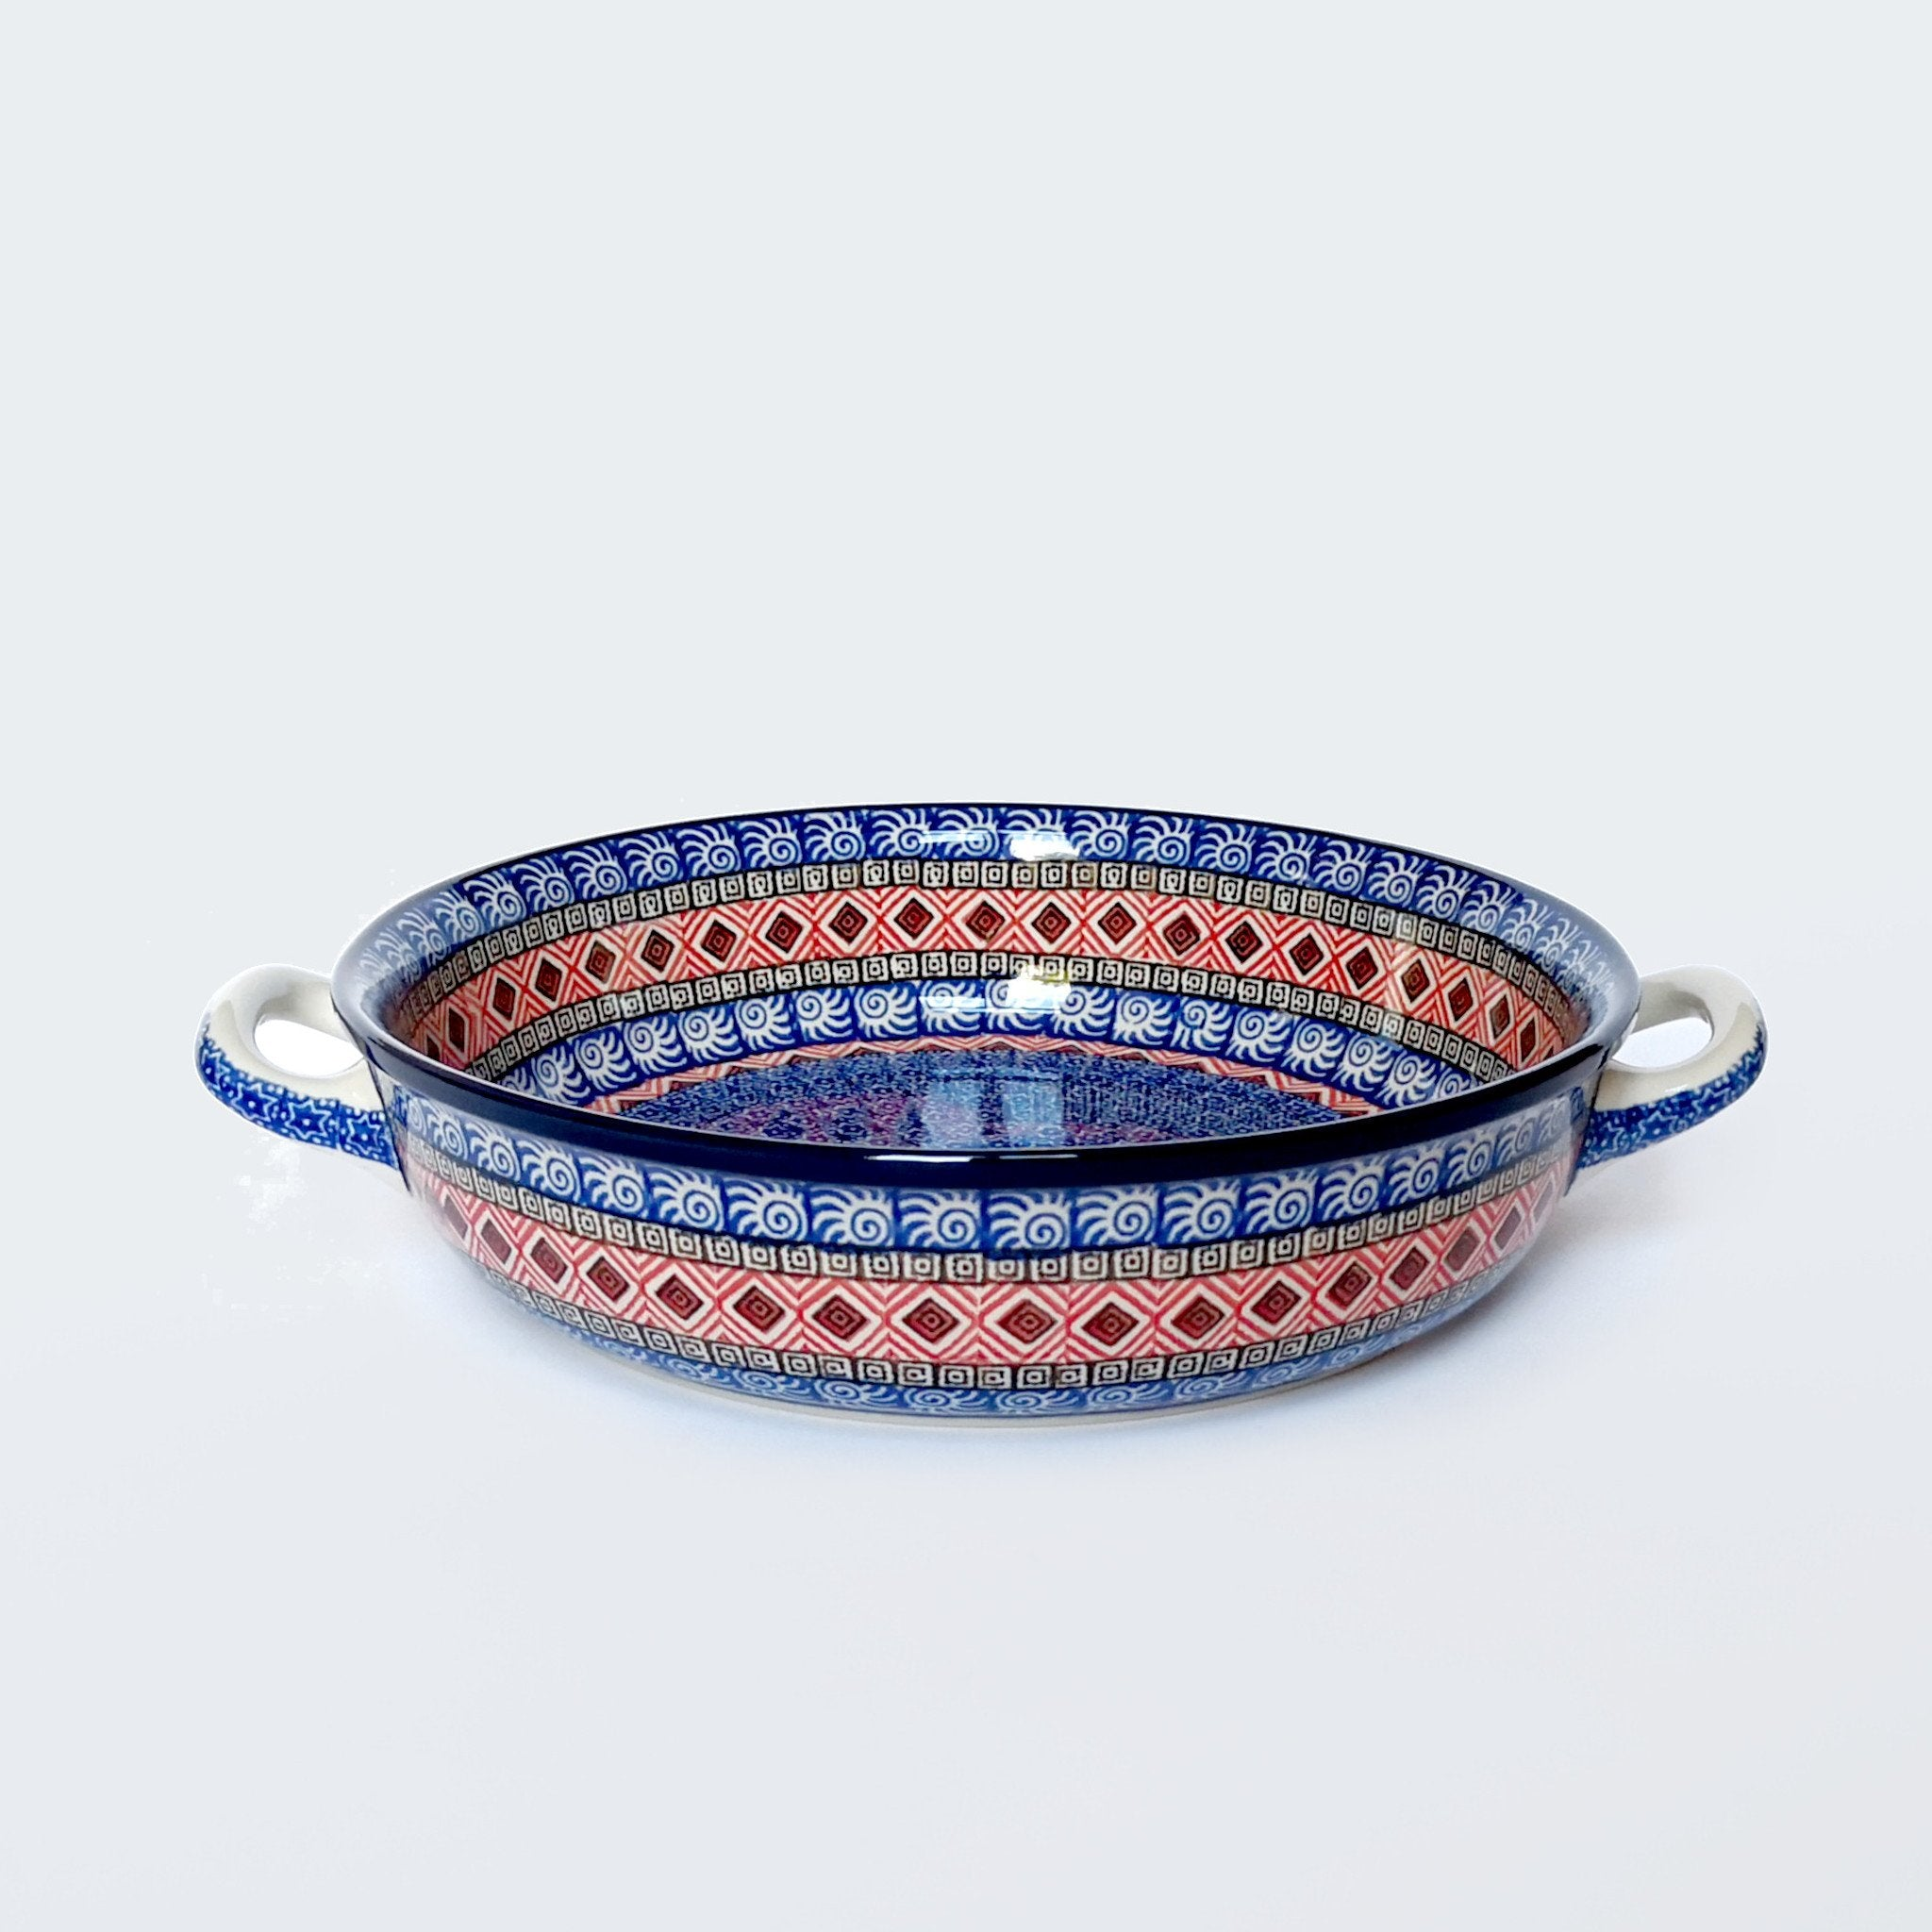 Large Round Baking Dish With Handles in Maroc